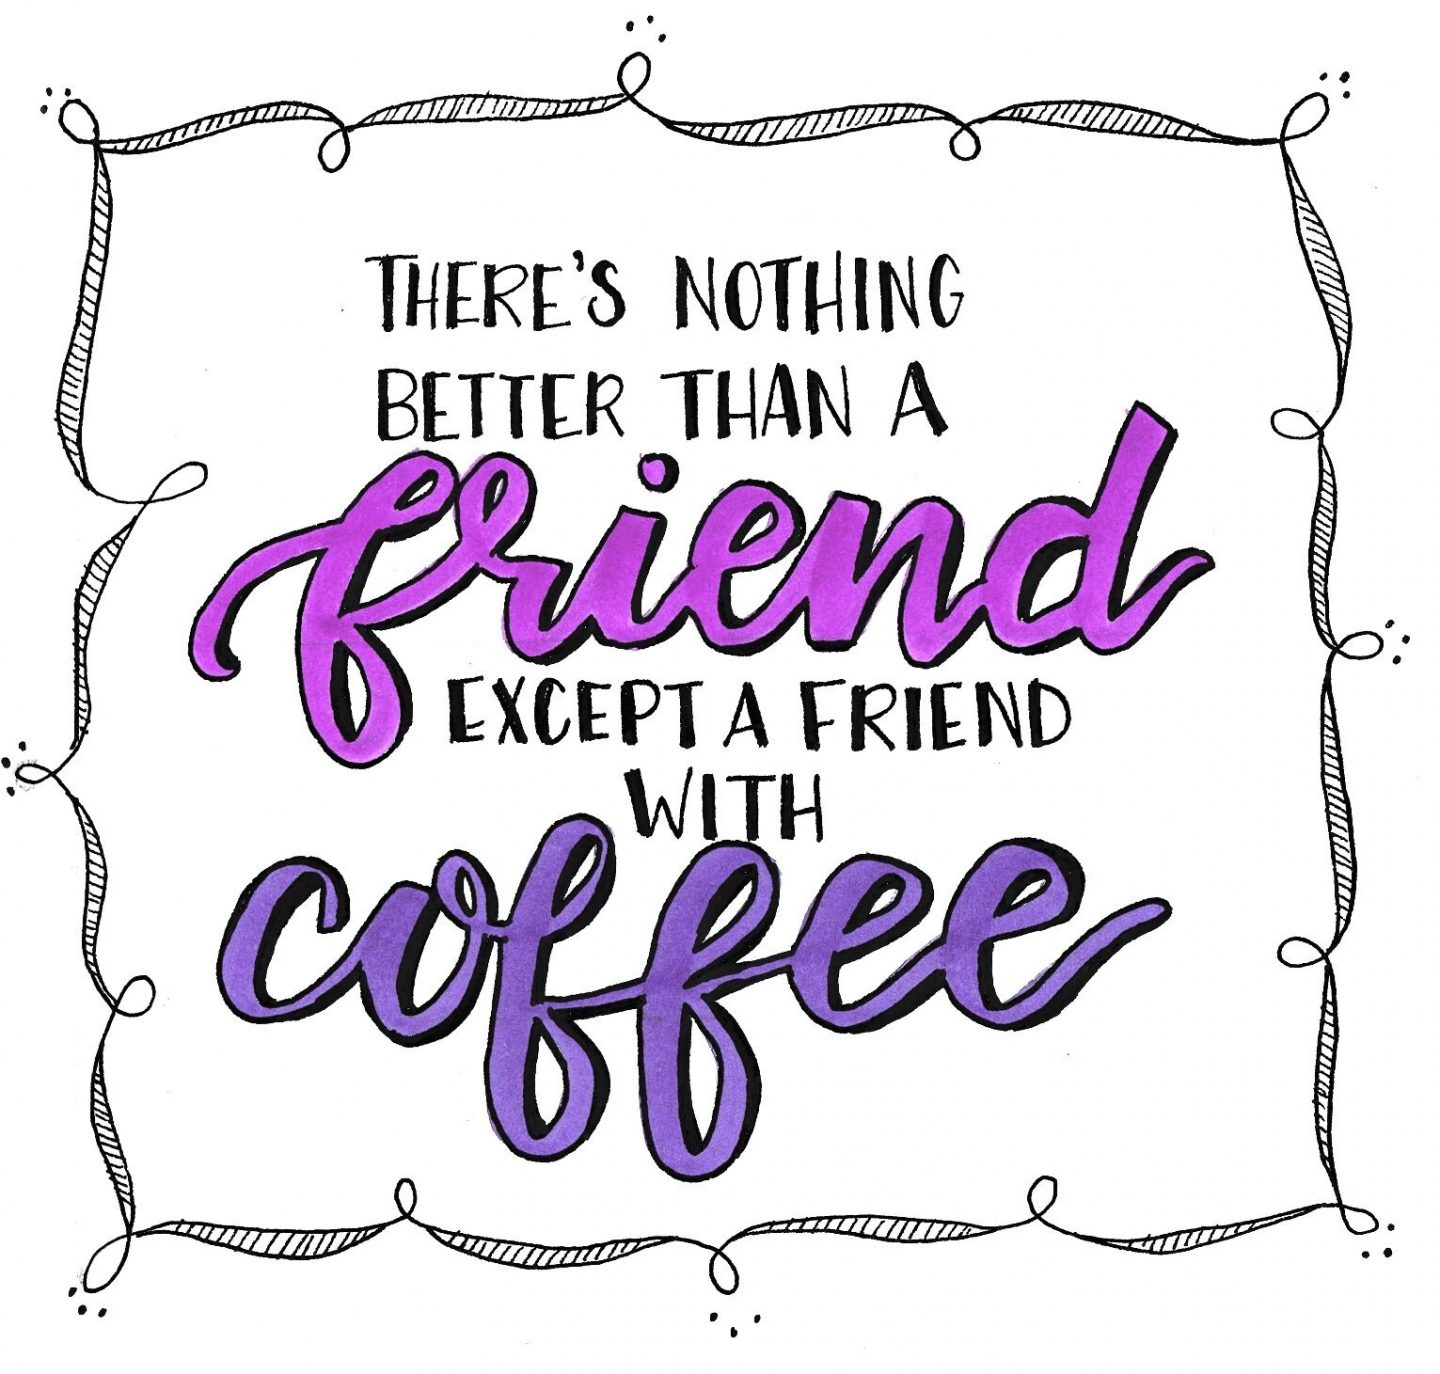 Inspirational quote with handlettering about friendship and coffee. Illustration by Amy Latta. #amylatta #inspirationalquote #coffee #friendship